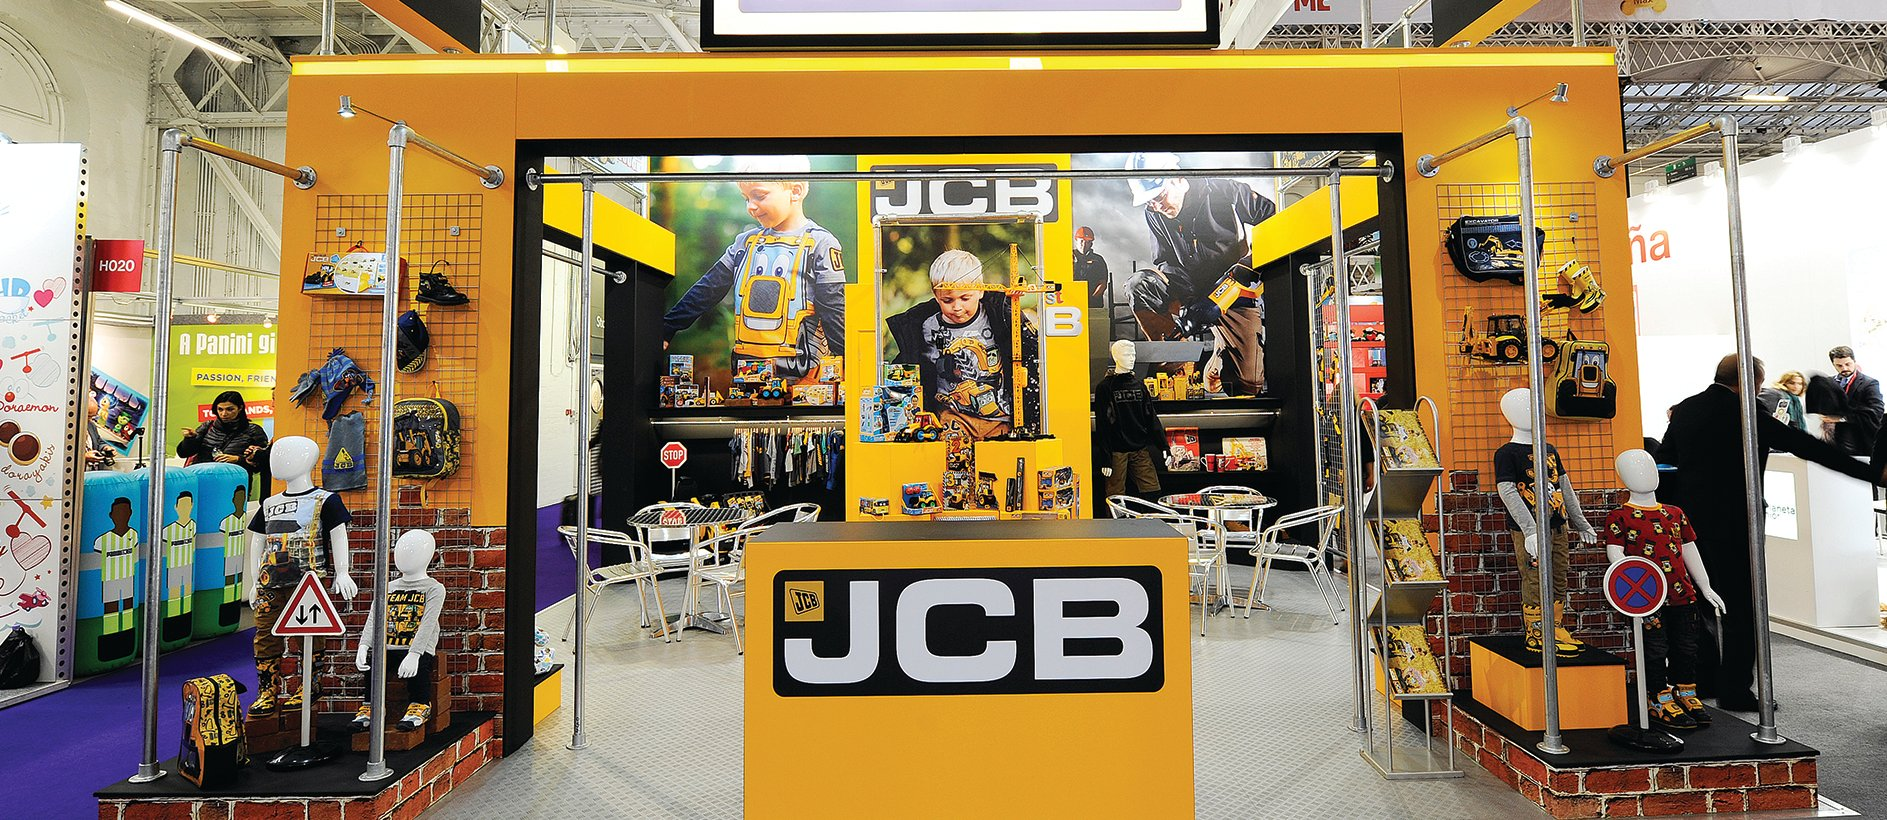 JCB exhibition stand by Exhibit 3Sixty